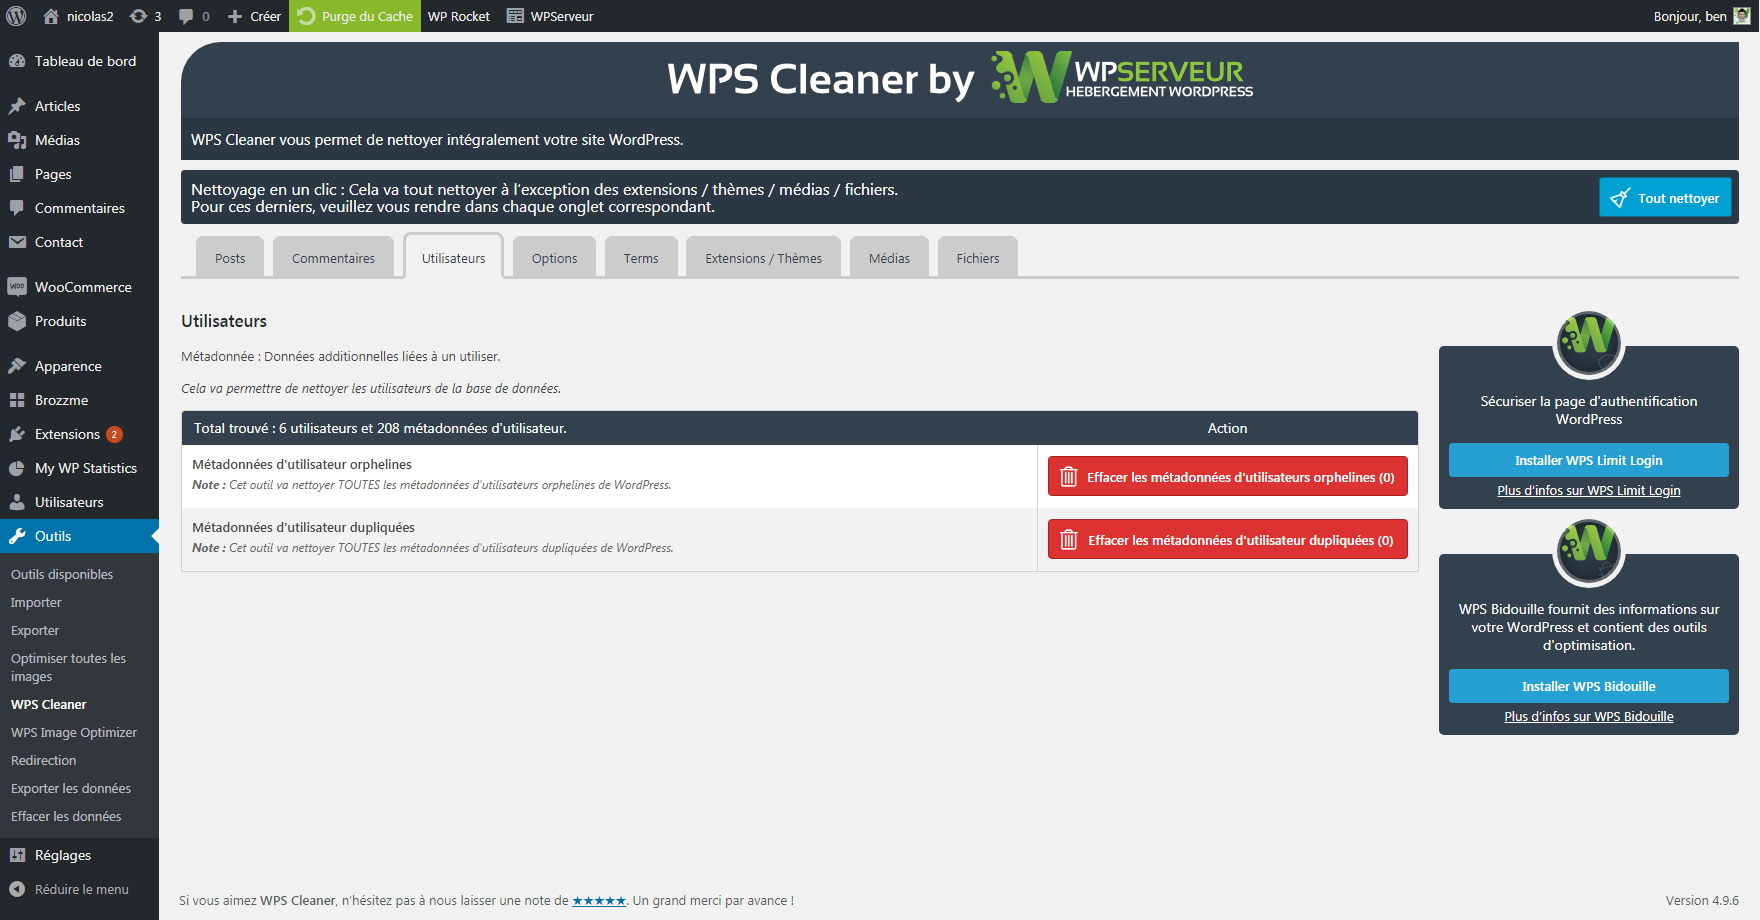 Cleaning users